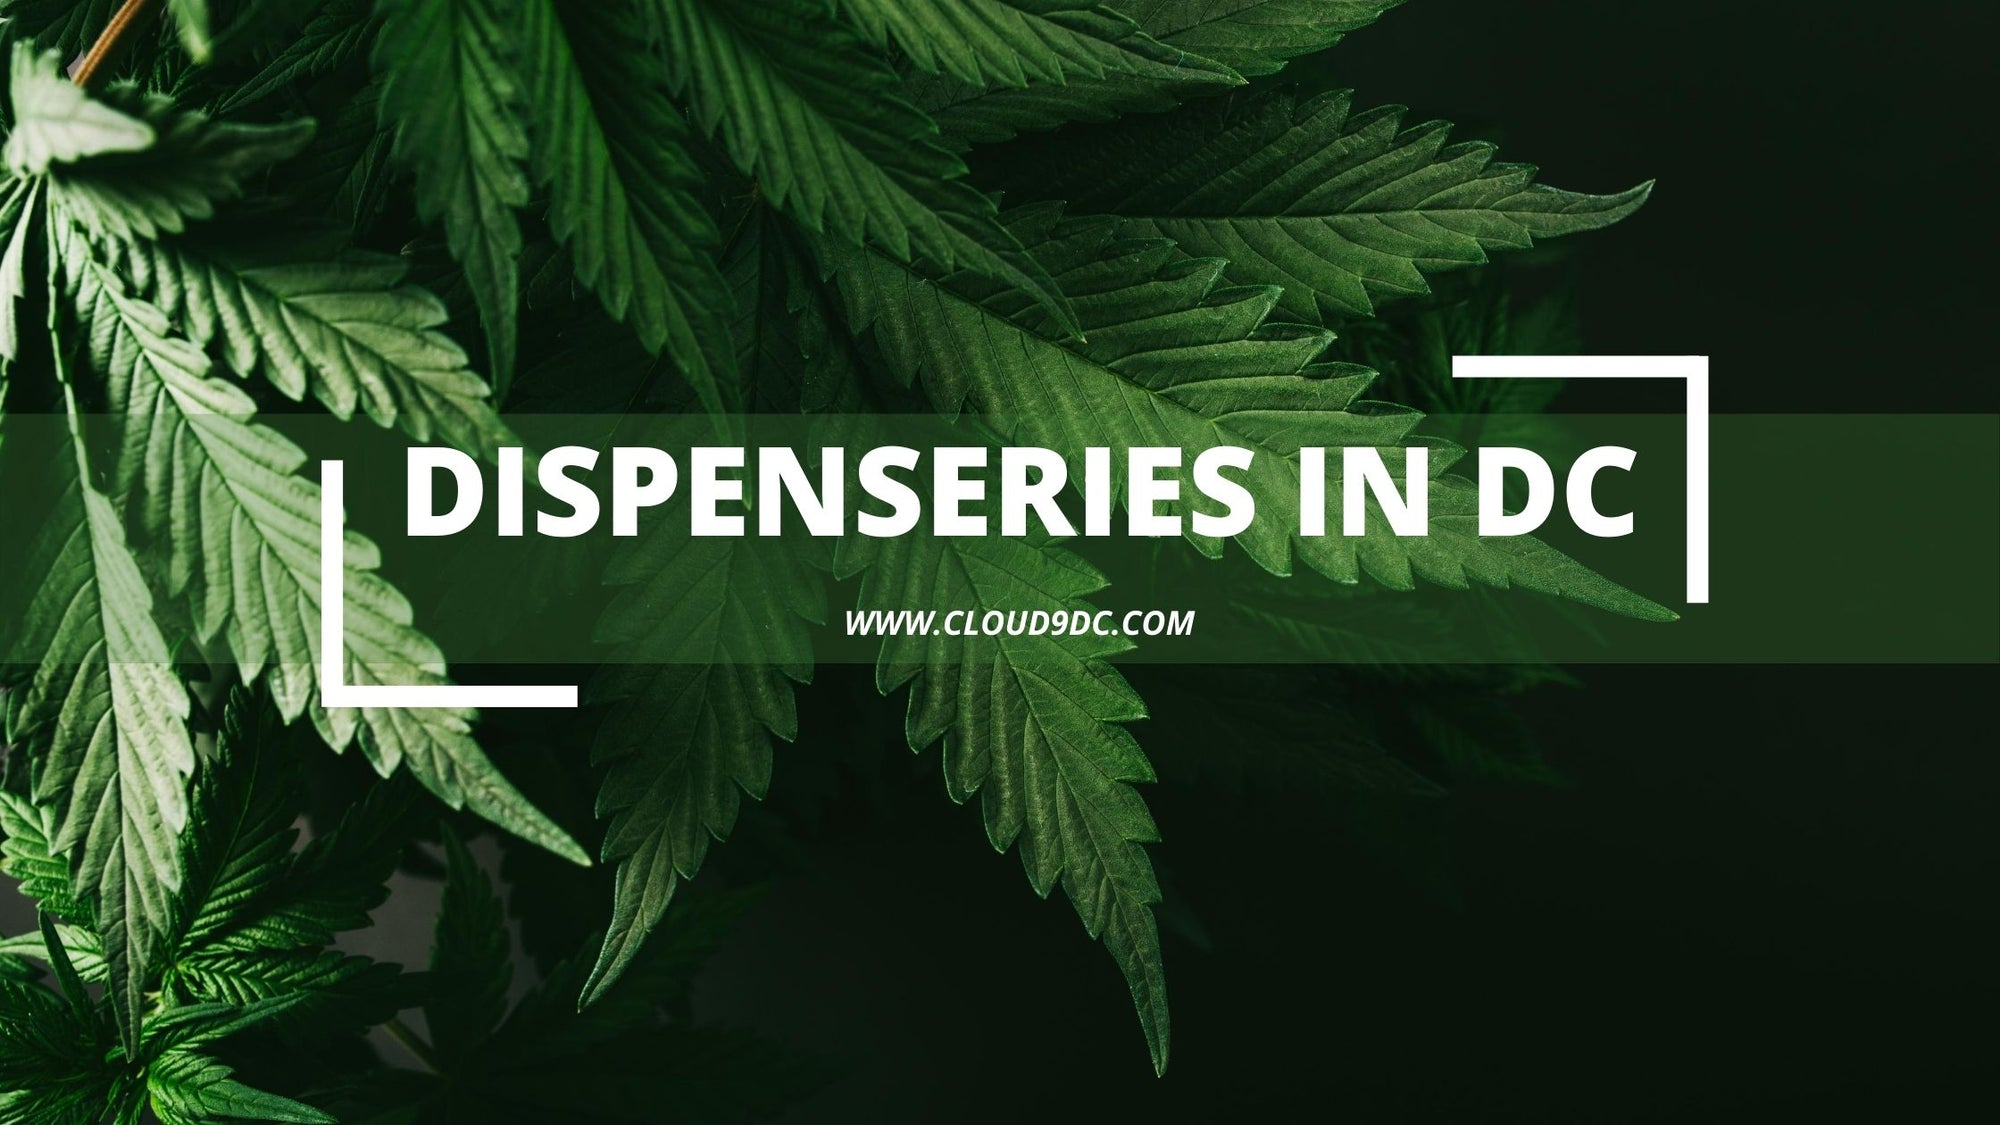 Dispensaries in DC banner